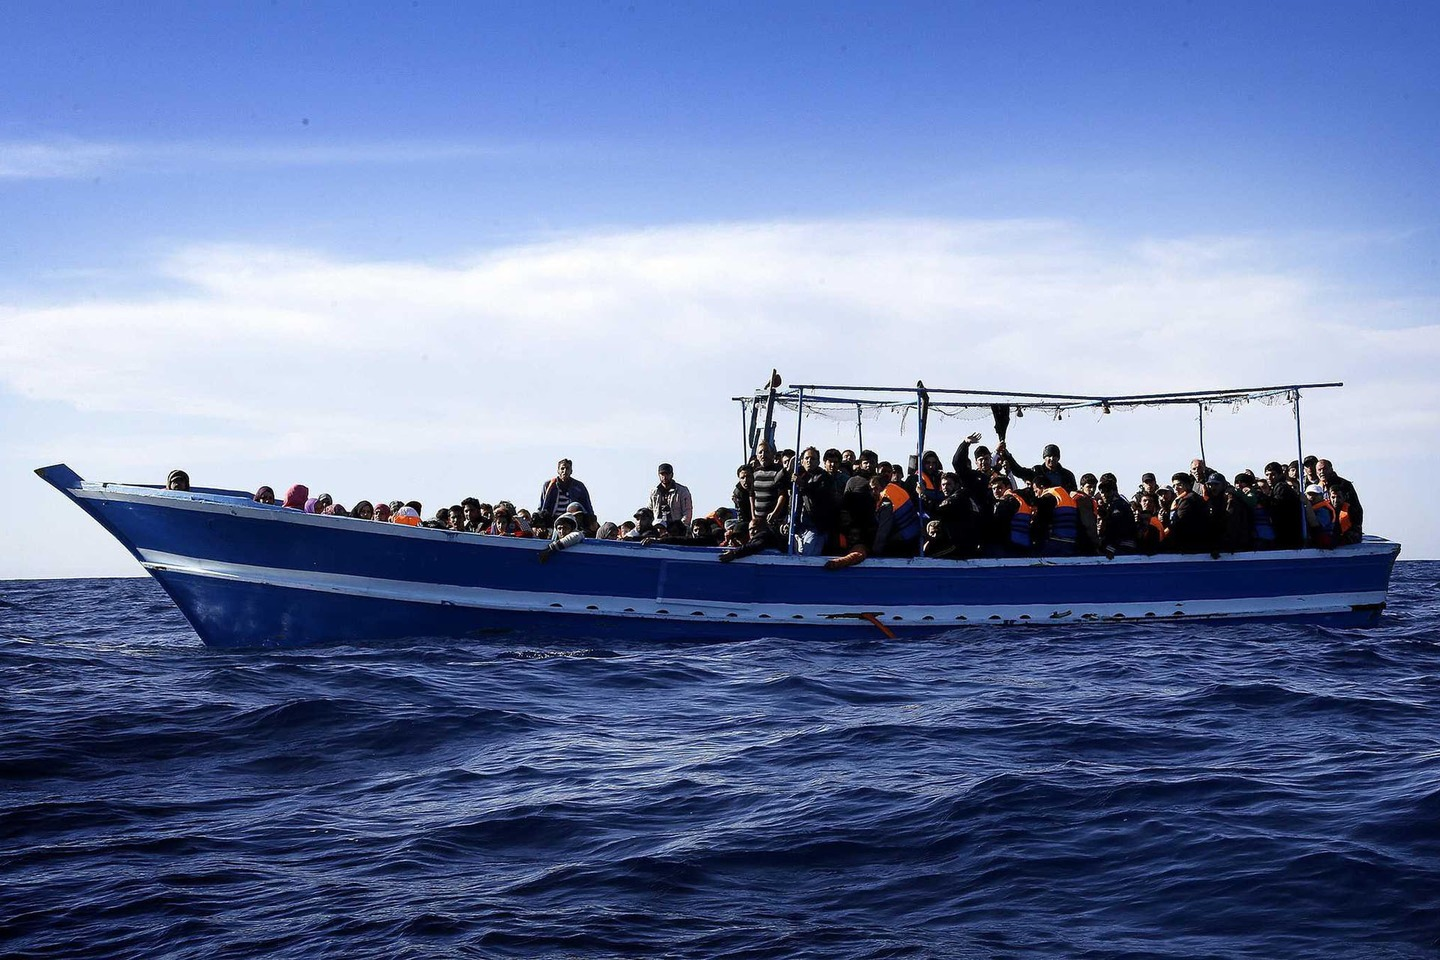 Naufragio in Libia: oltre 100 dispersi in mare